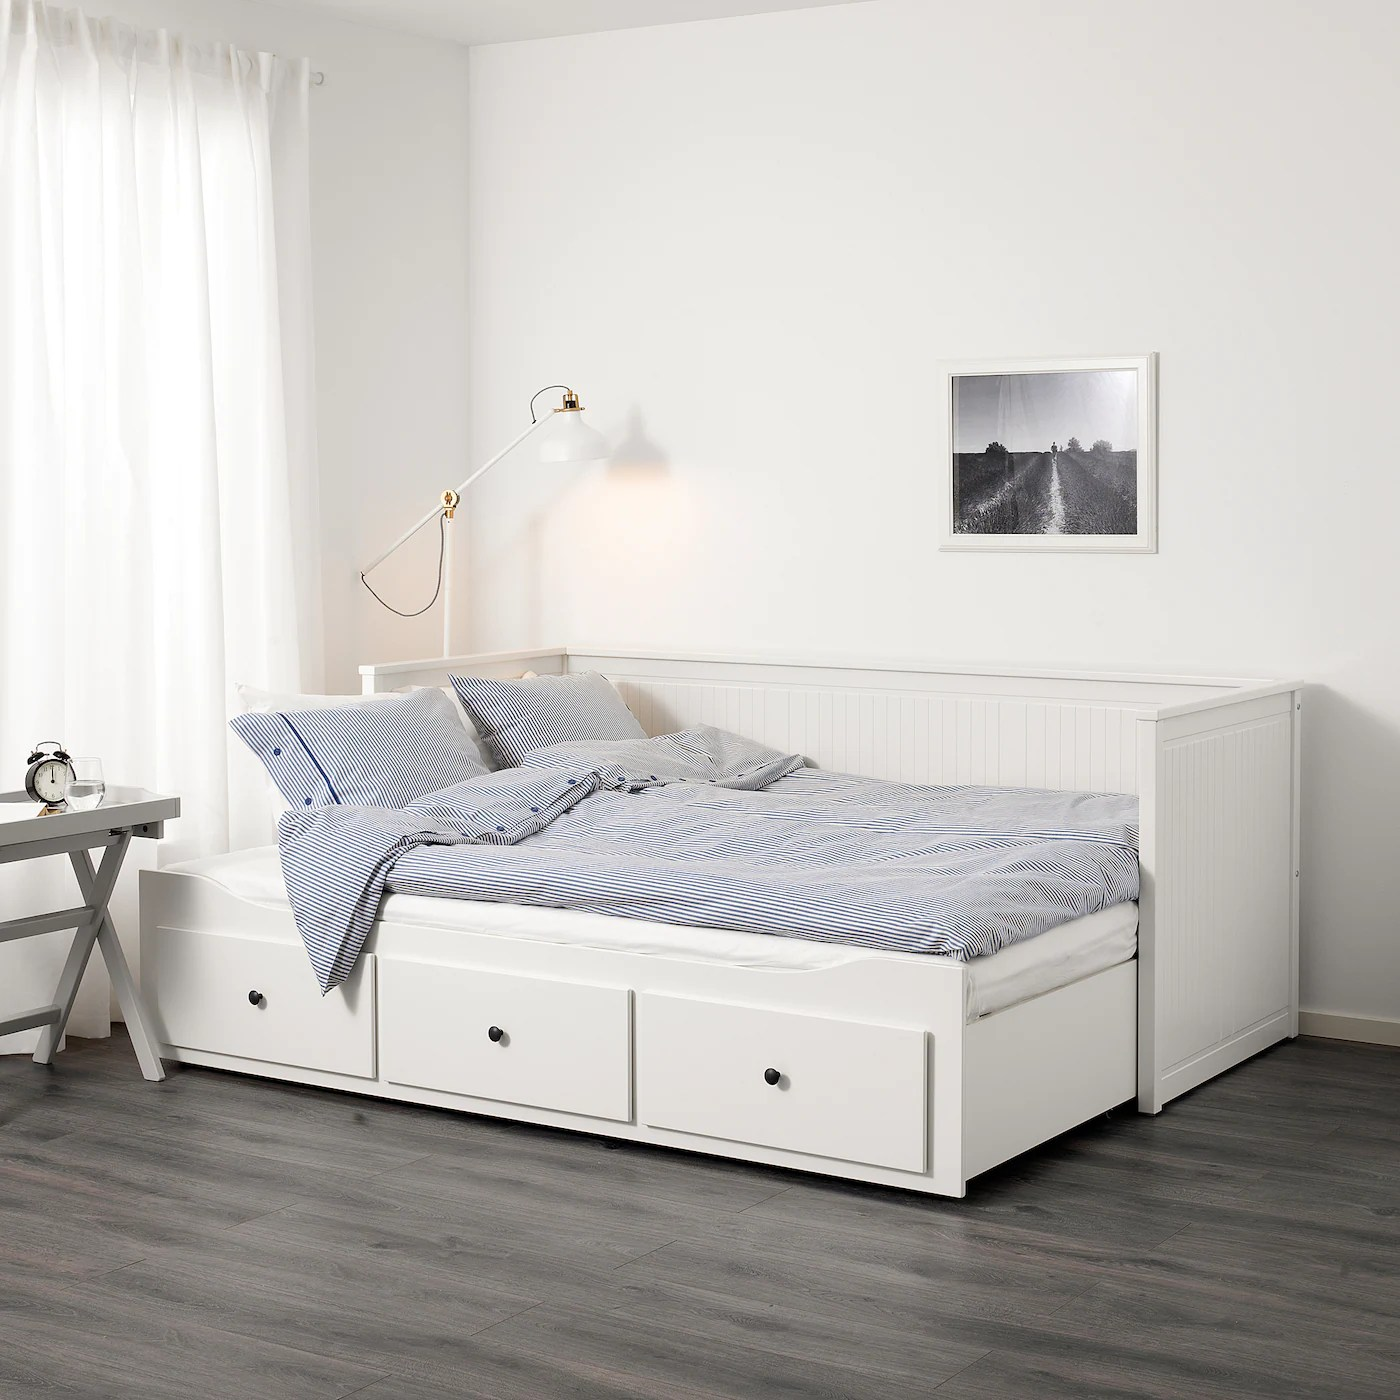 Hemnes White Day Bed With 3 Drawers 80x200 Cm Ikea